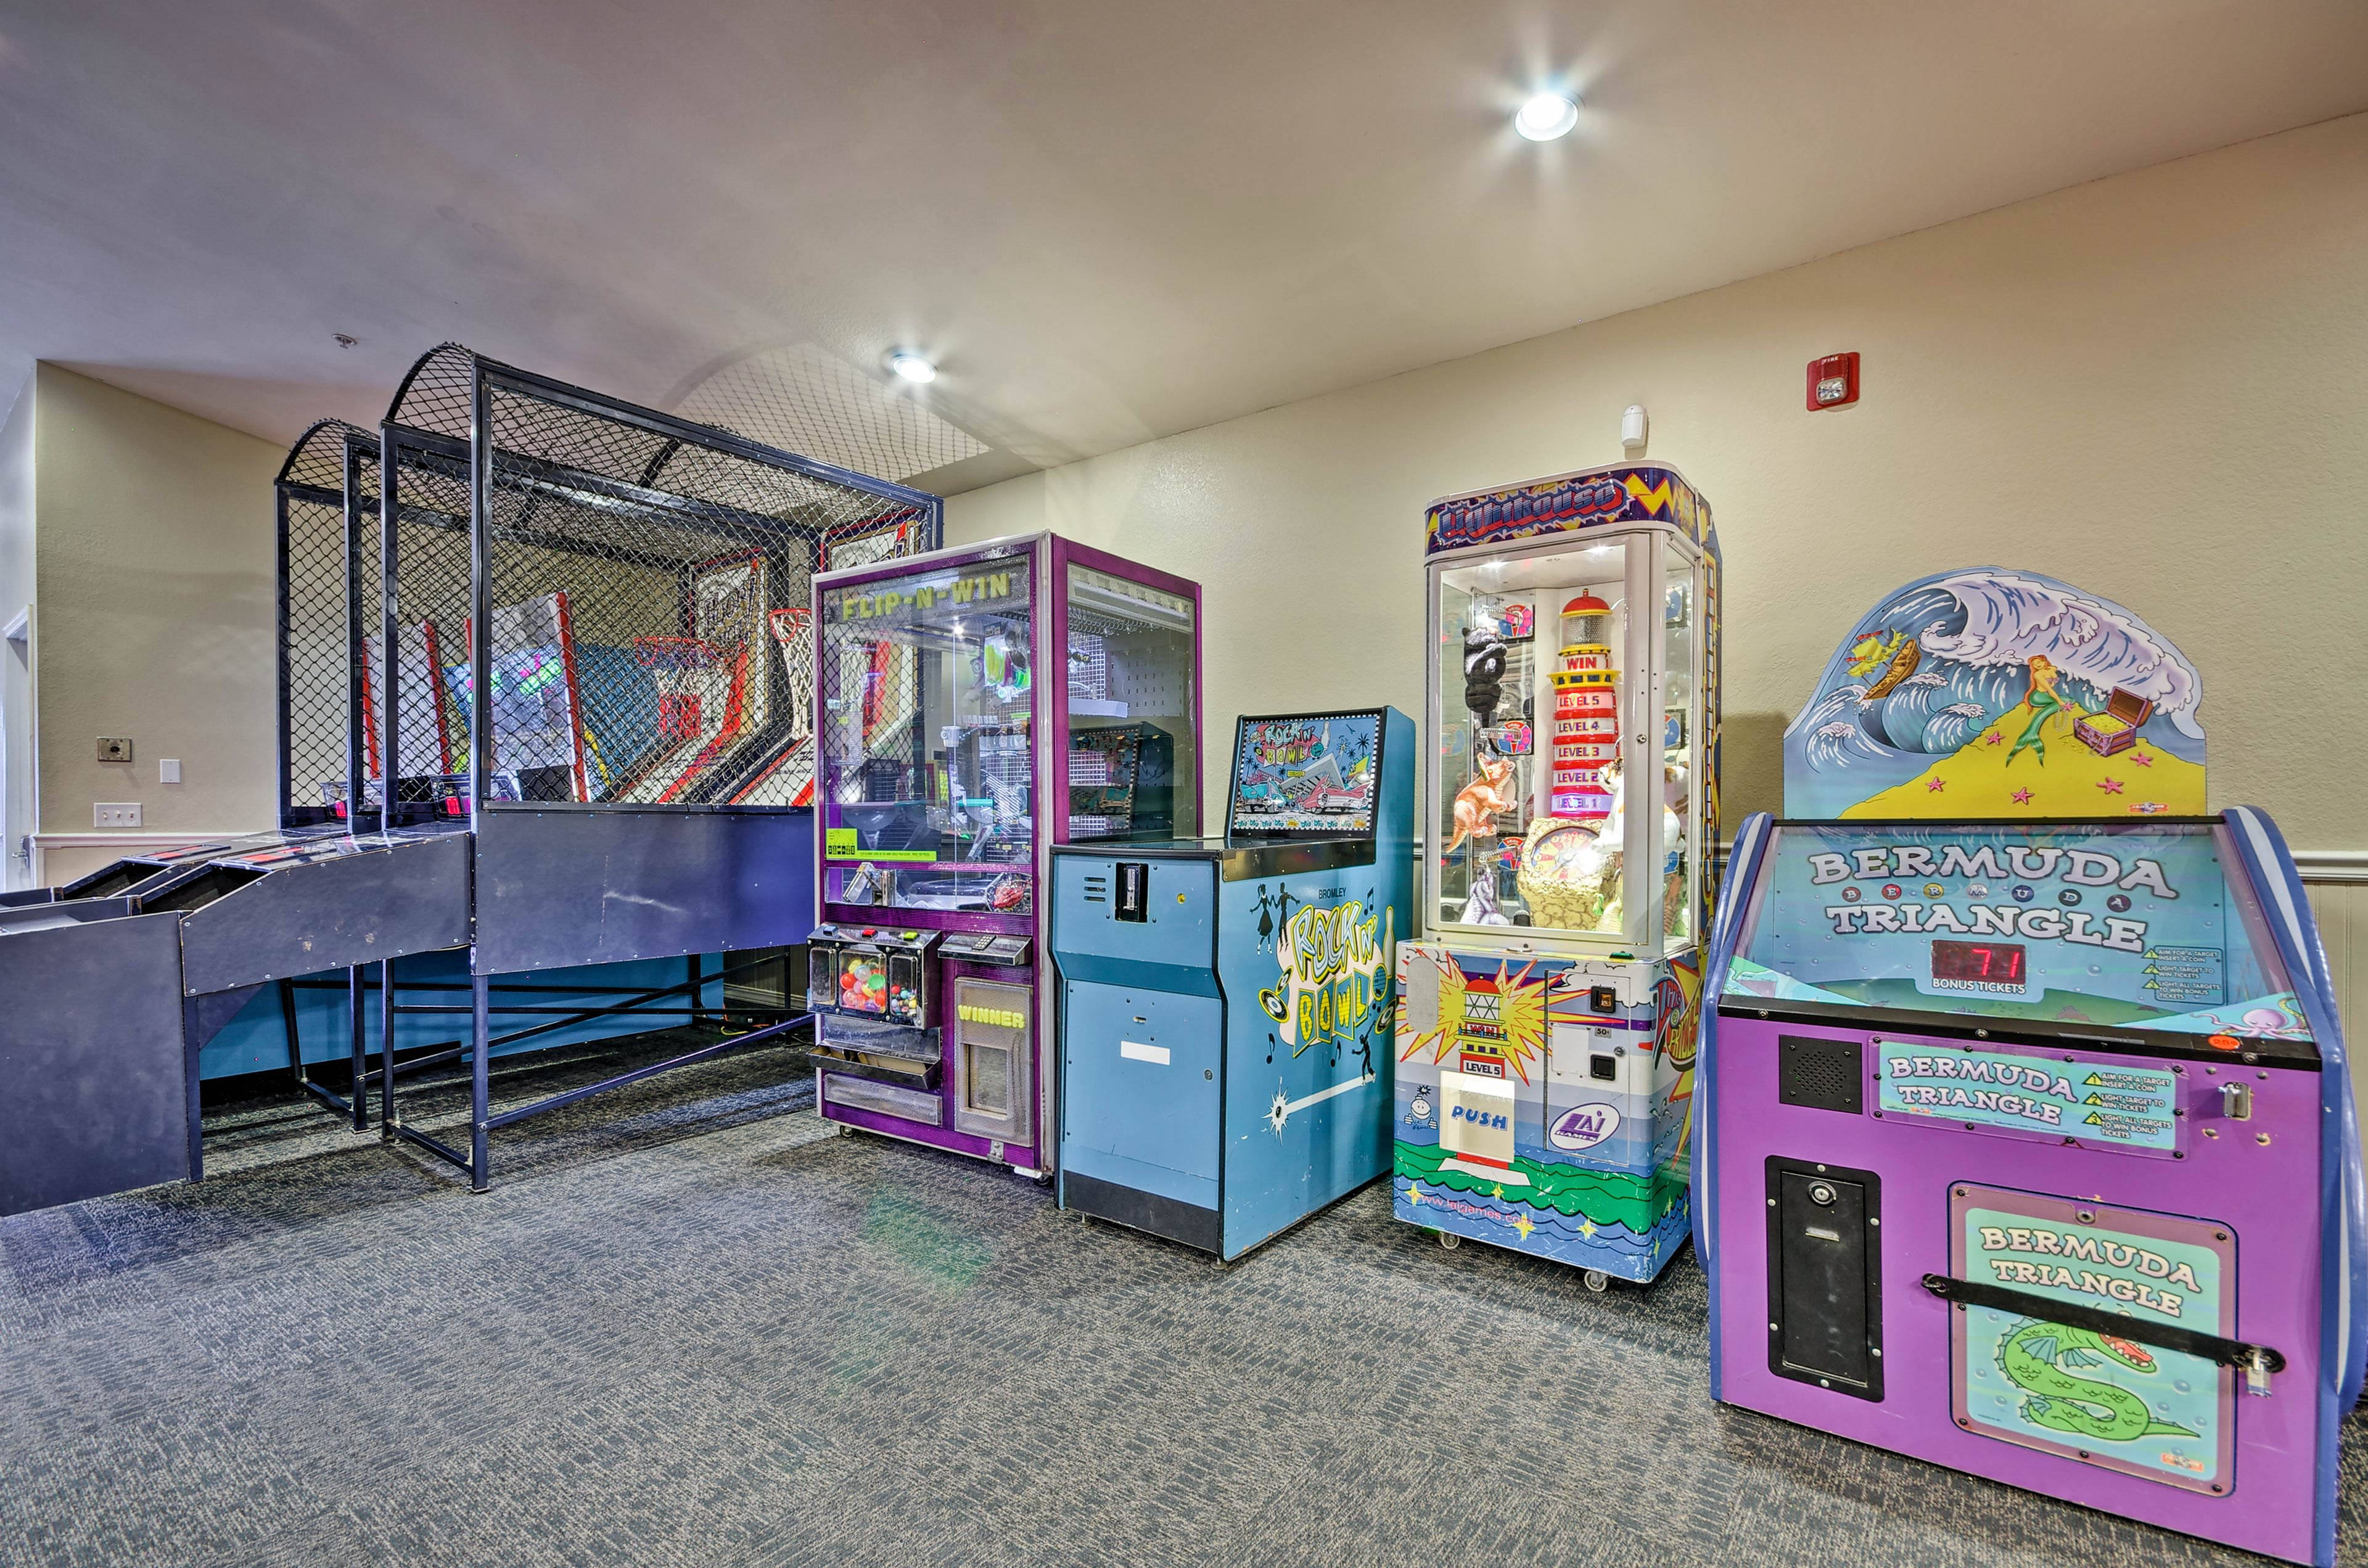 Let the kiddos play in the arcade room.